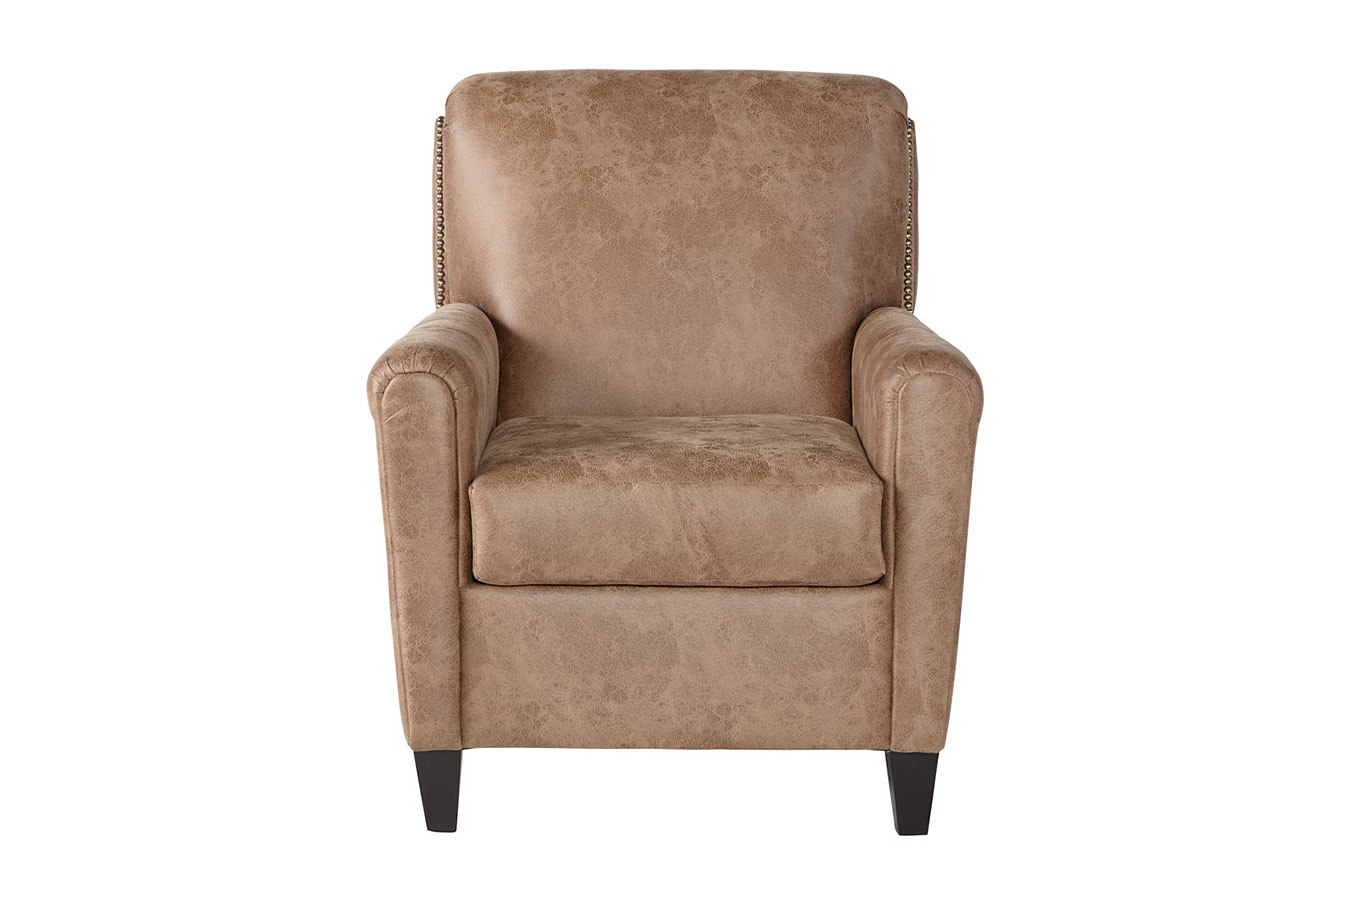 15 Series Jetson Ginger Occasional Chair  $499